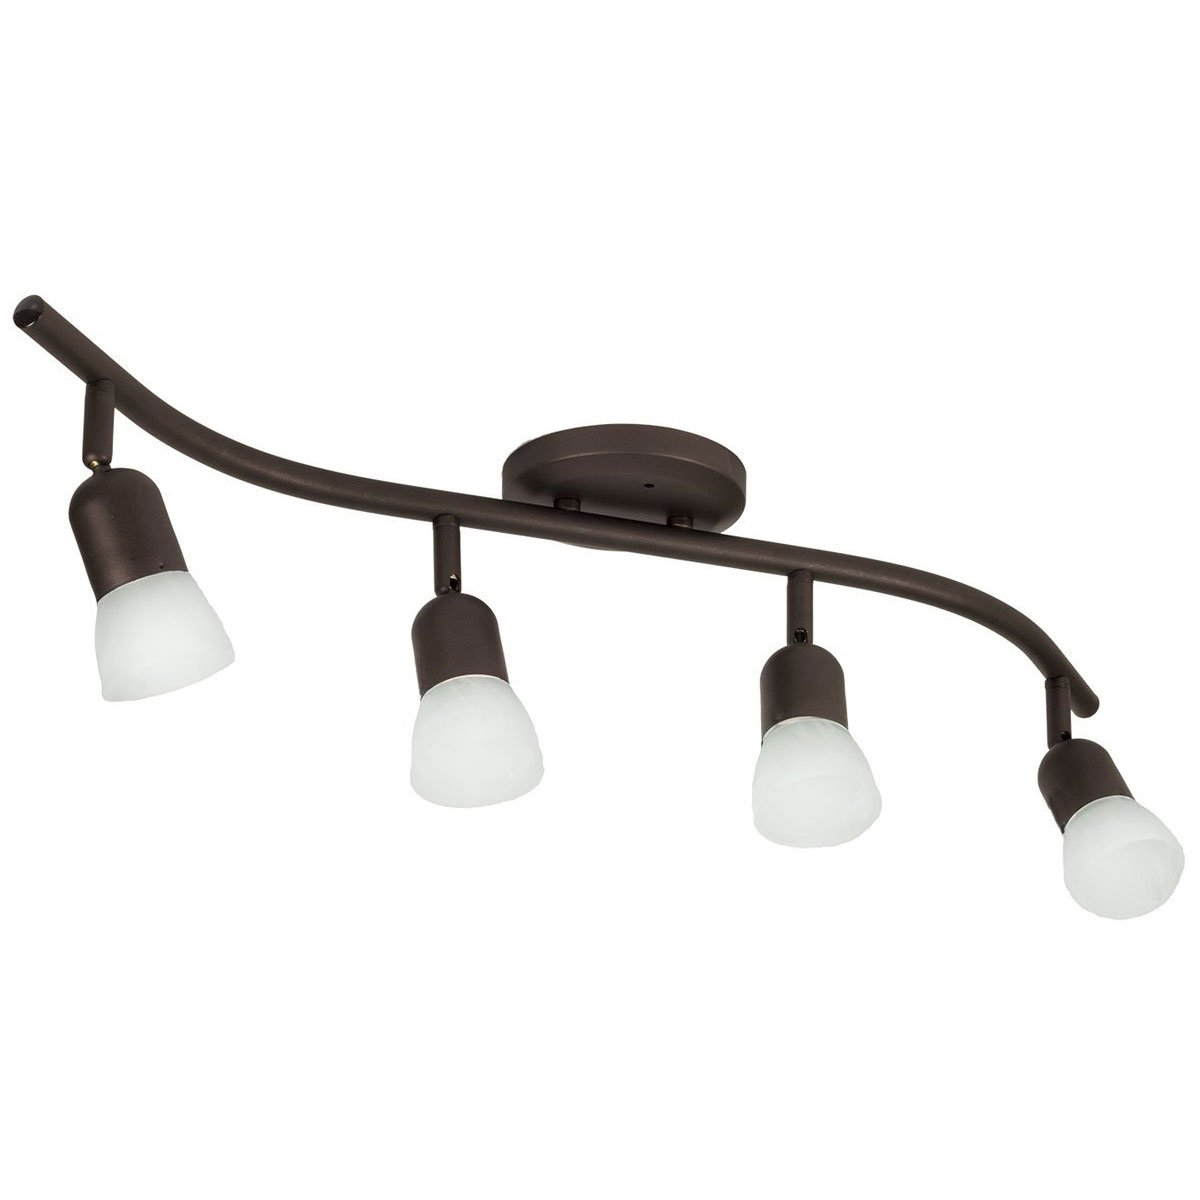 amazon track lighting. 4 Light Track Lighting Wall Or Ceiling Fixture Adjustable, Oil Rubbed Bronze - Amazon.com Amazon